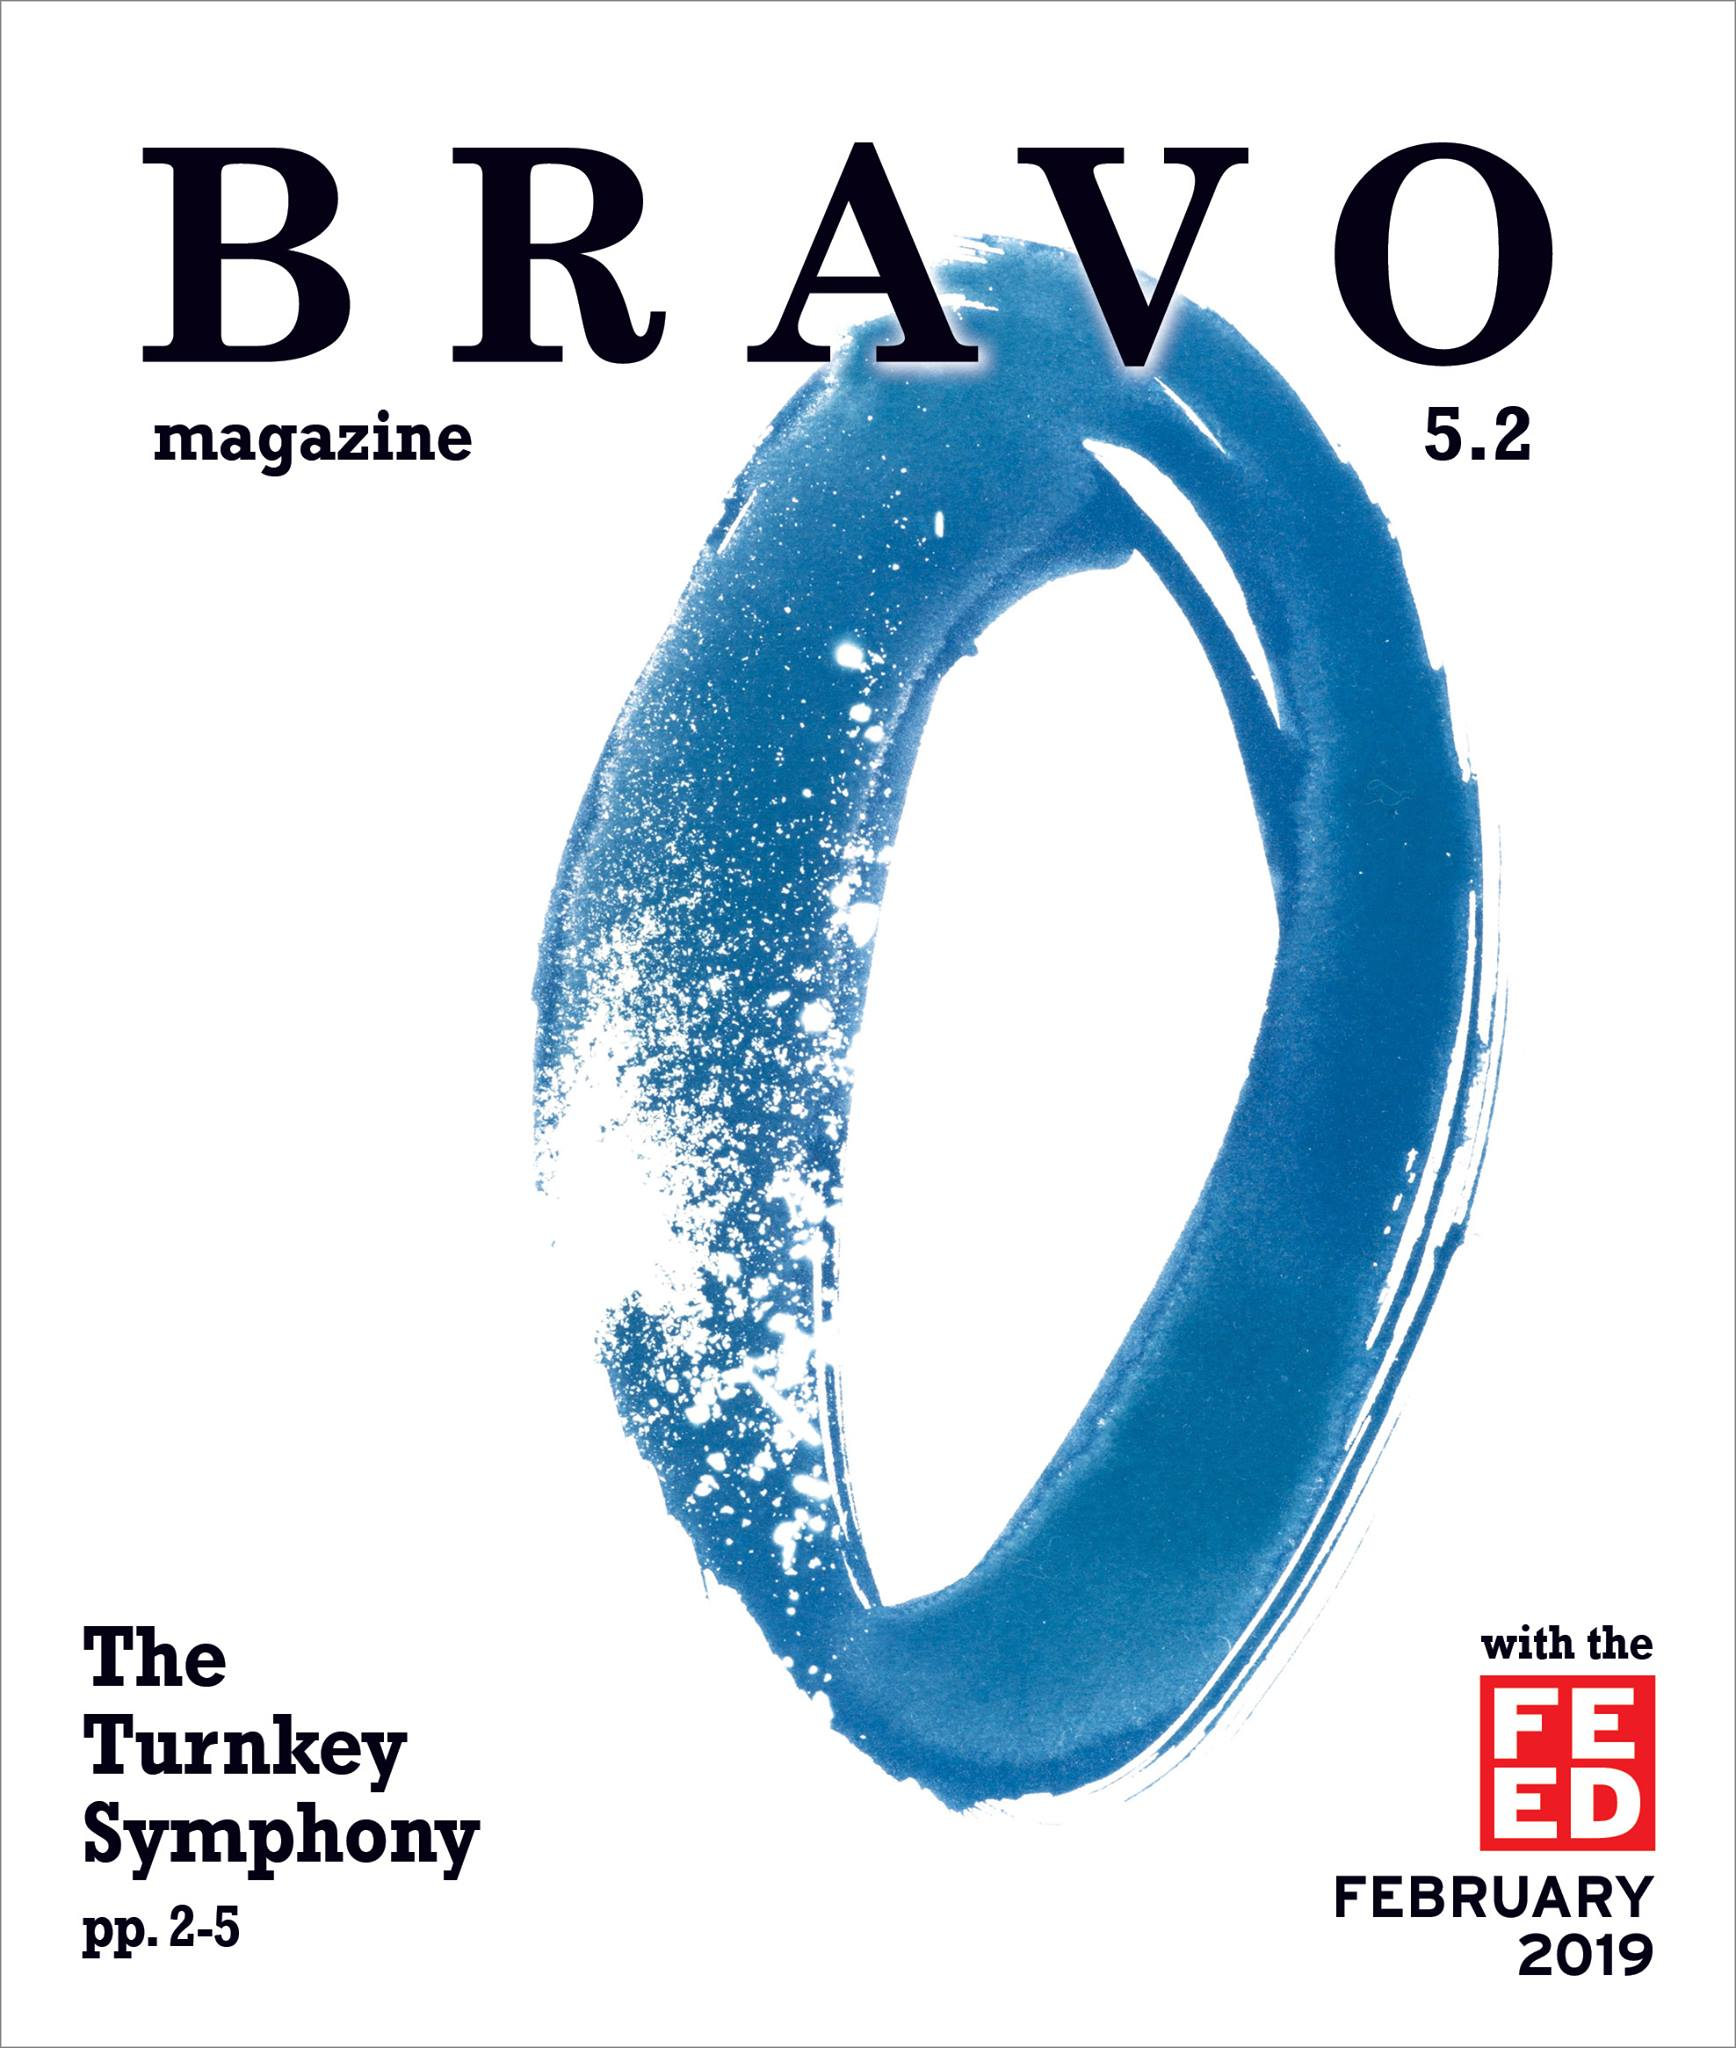 Bravo Magazine February 2019 Cover- blue circle